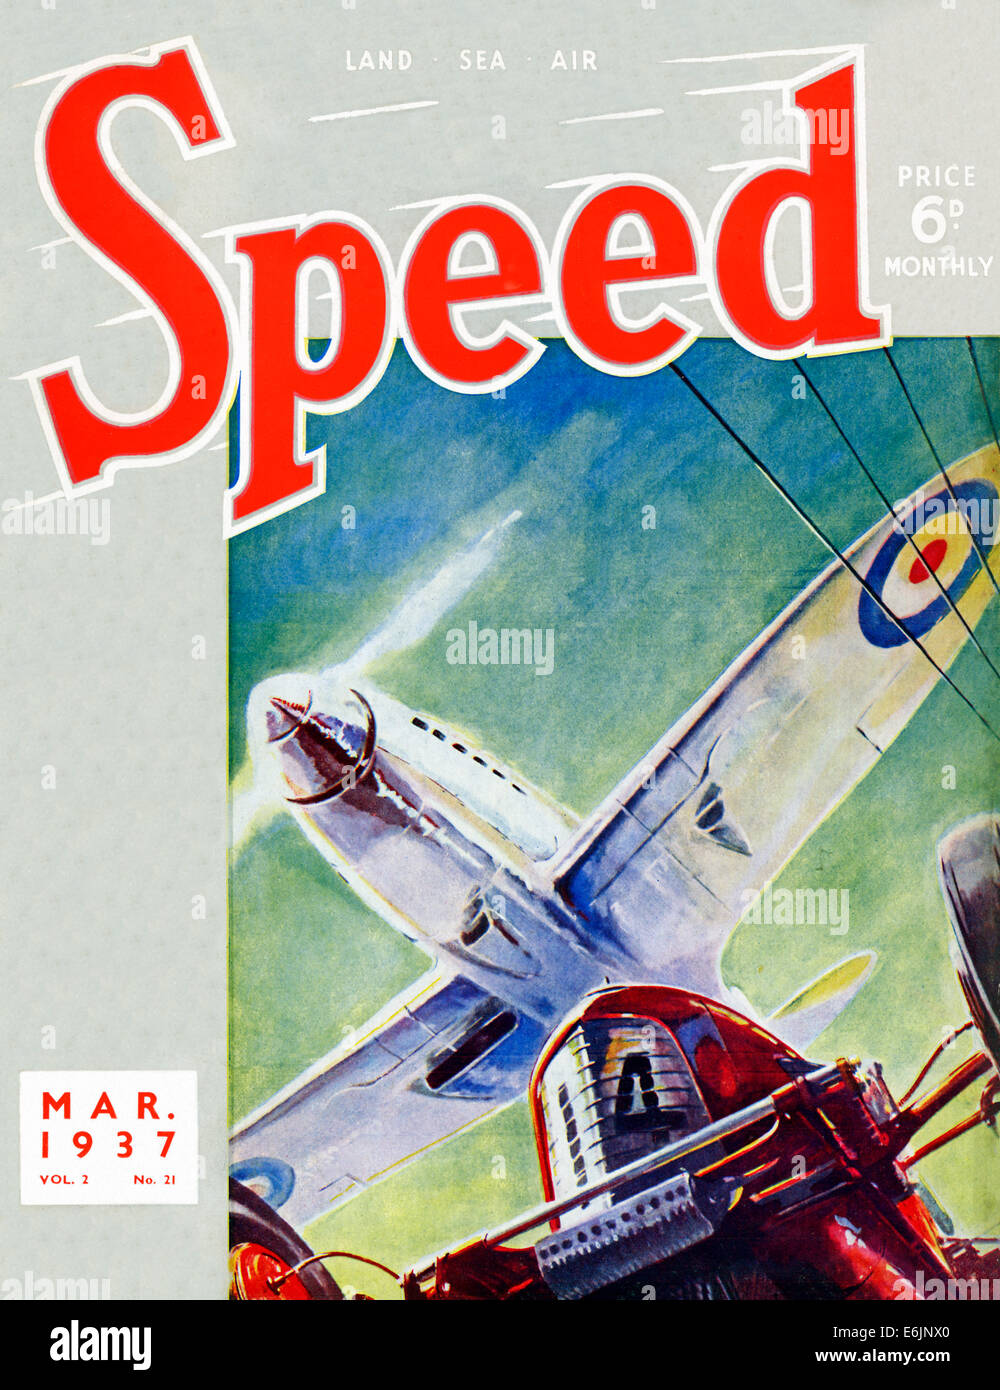 Speed, March 1937 cover of the English motor sports magazine with a Spitfire fighter flying over a racing car - Stock Image